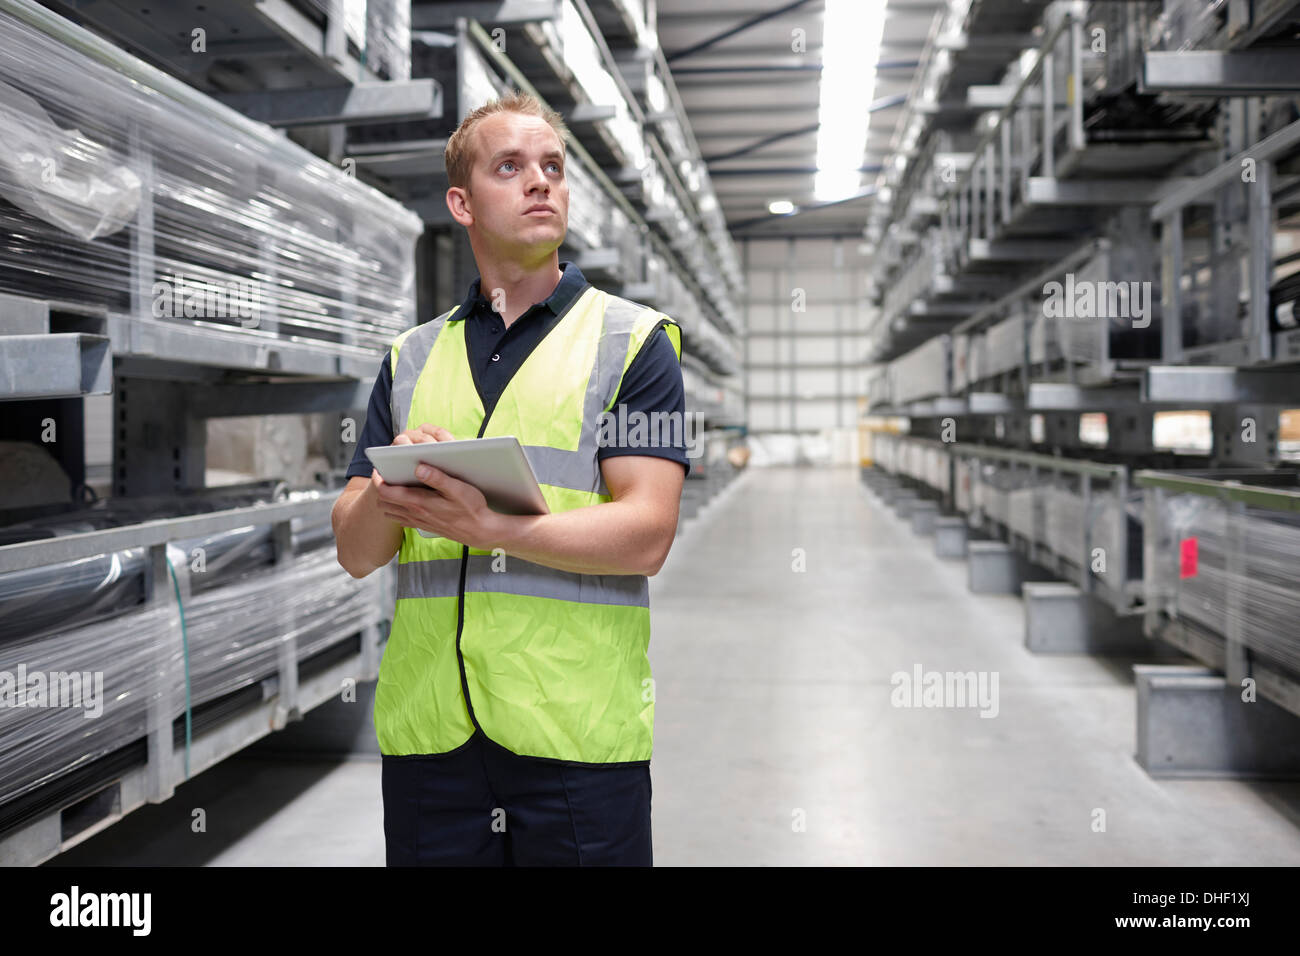 Worker checking order in engineering warehouse - Stock Image